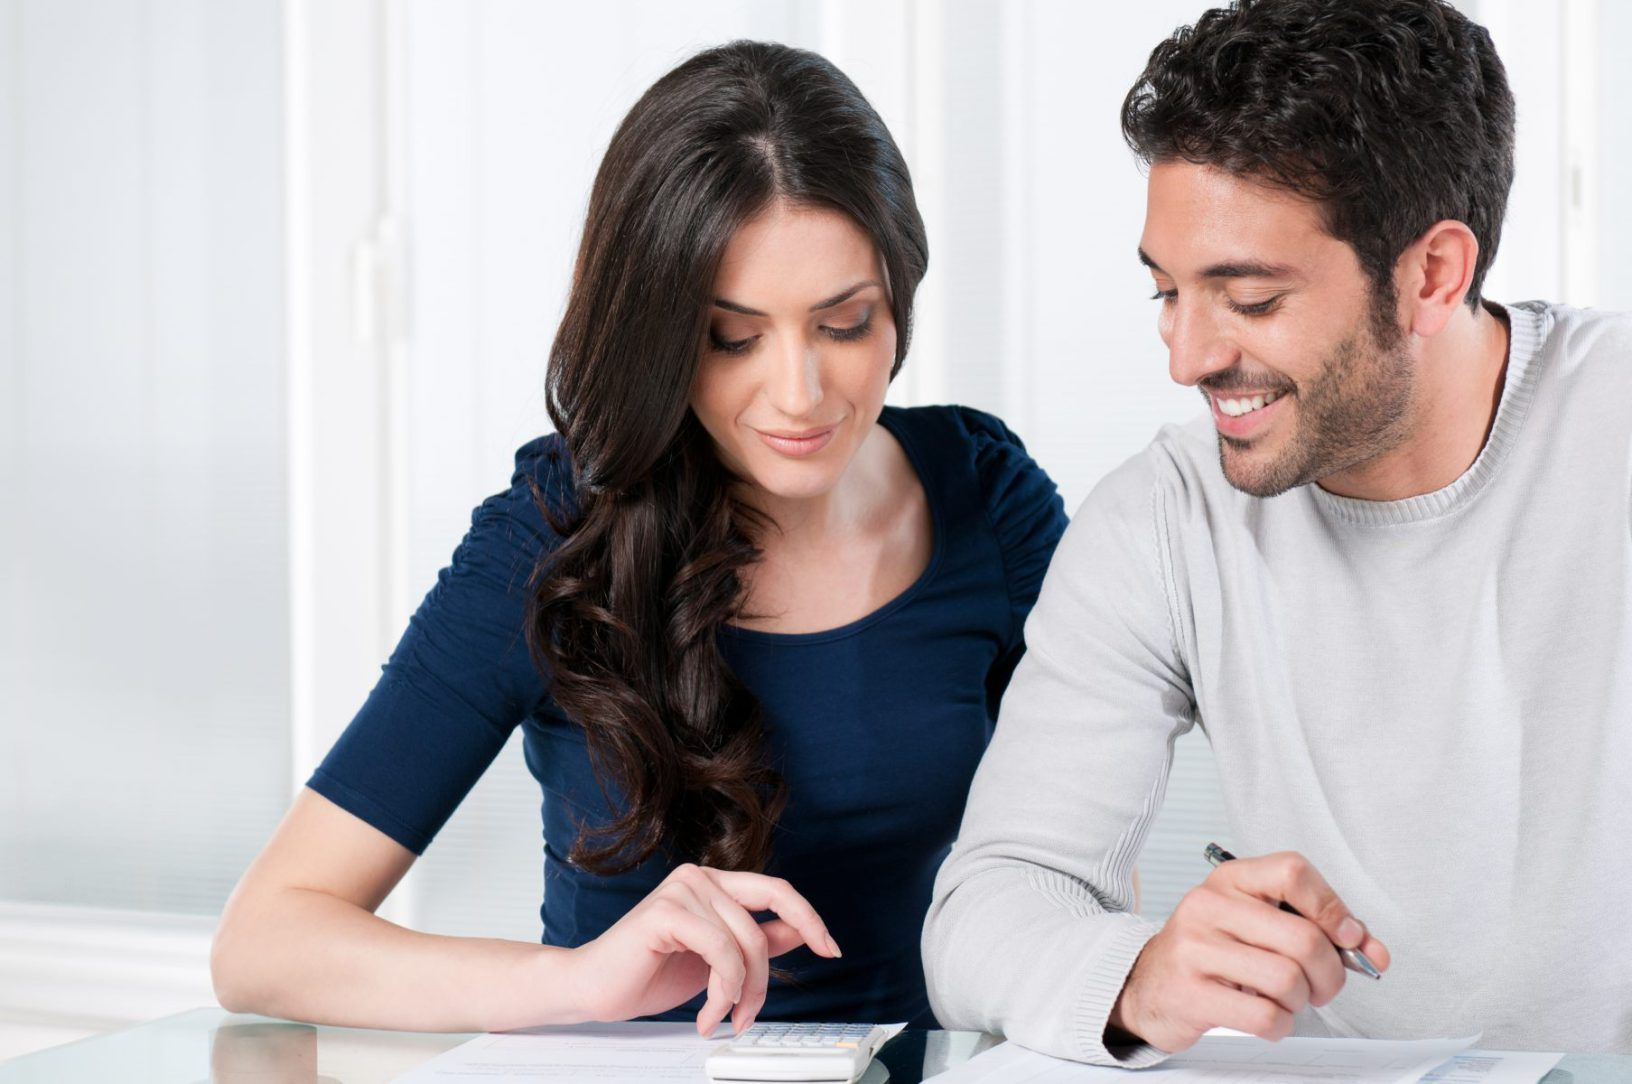 Cheap Wedding Insurance: Why It's Important To Compare Insurance Quotes From The